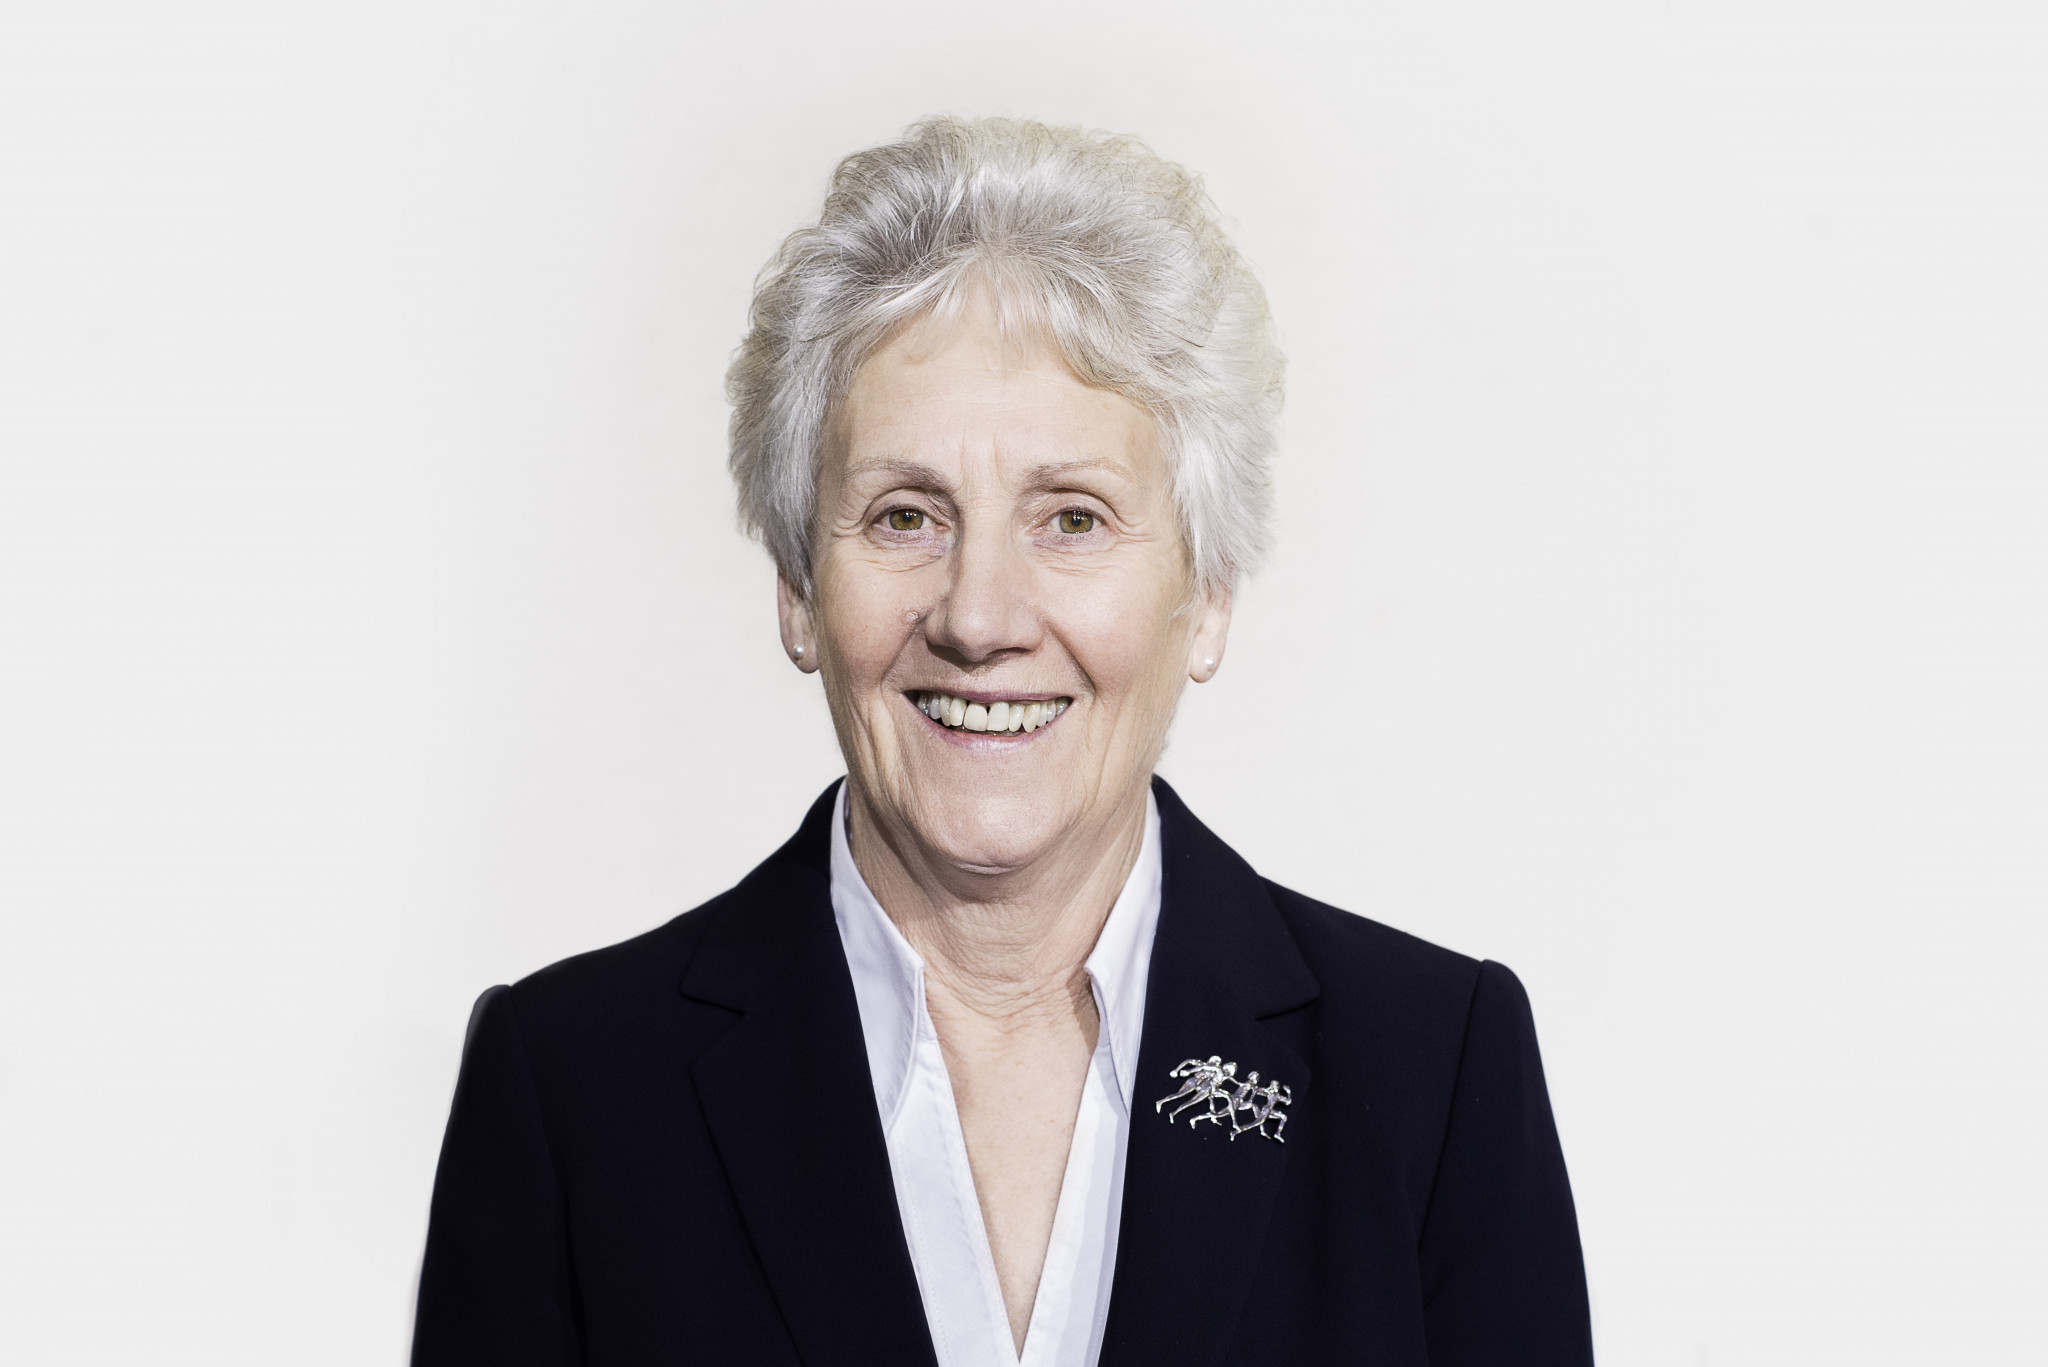 Dame Louise Martin: A special visit to India leaves me optimistic about the future of the Commonwealth Sport Movement